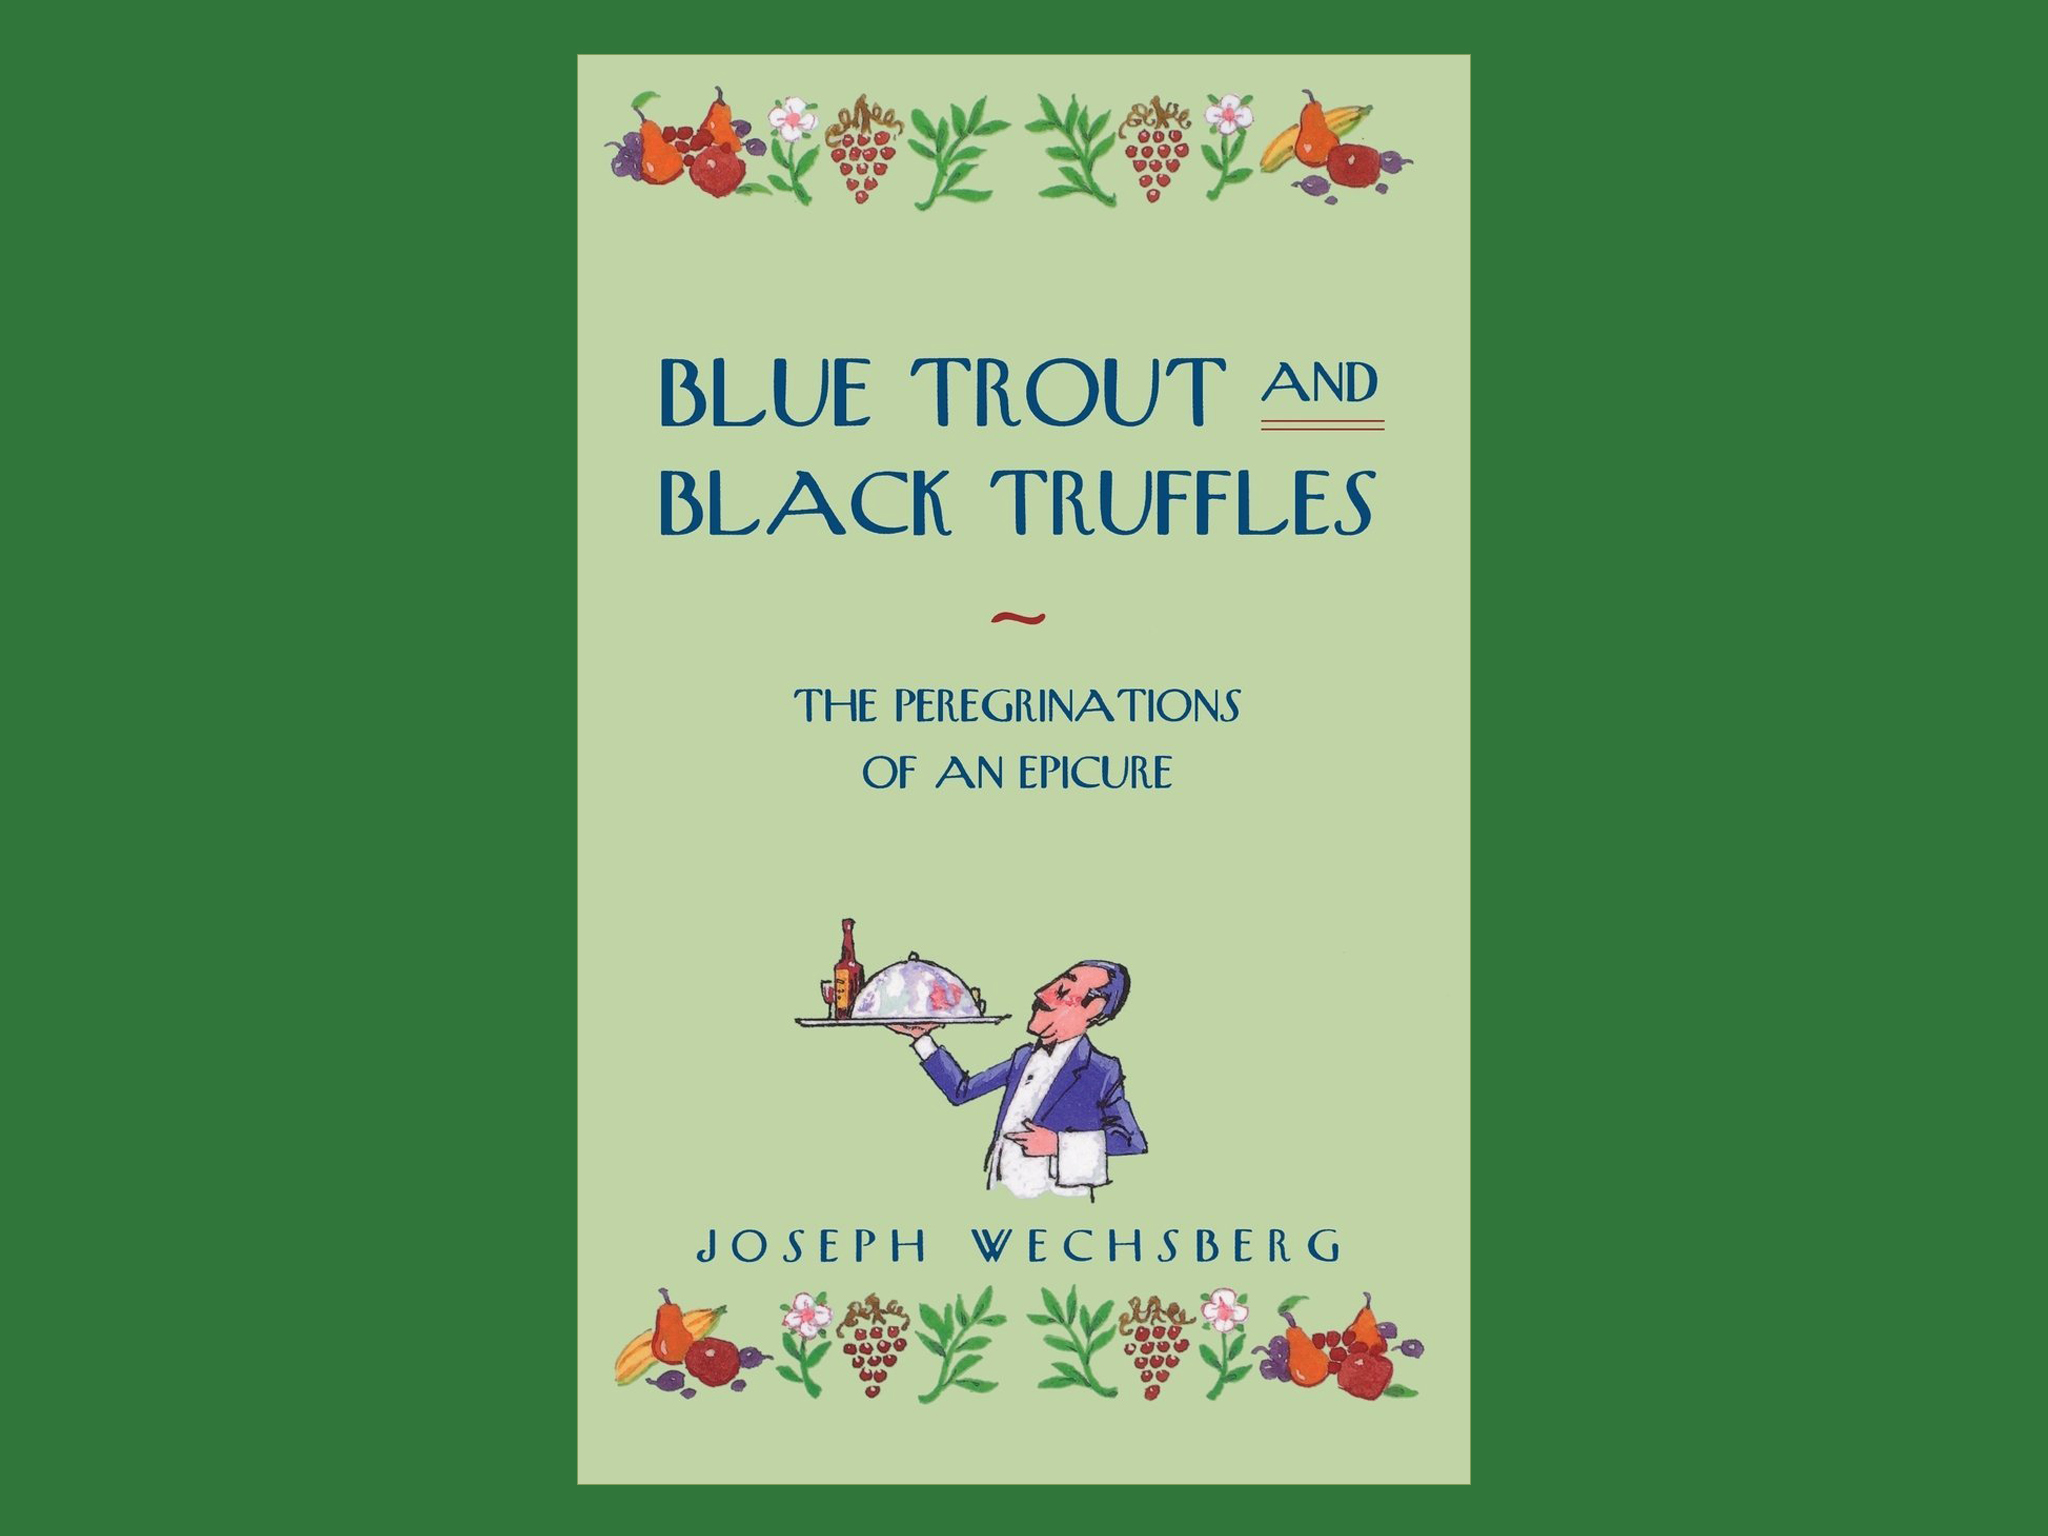 Best books: 'Blue Trout and Black Truffles' by Joseph Wechsberg